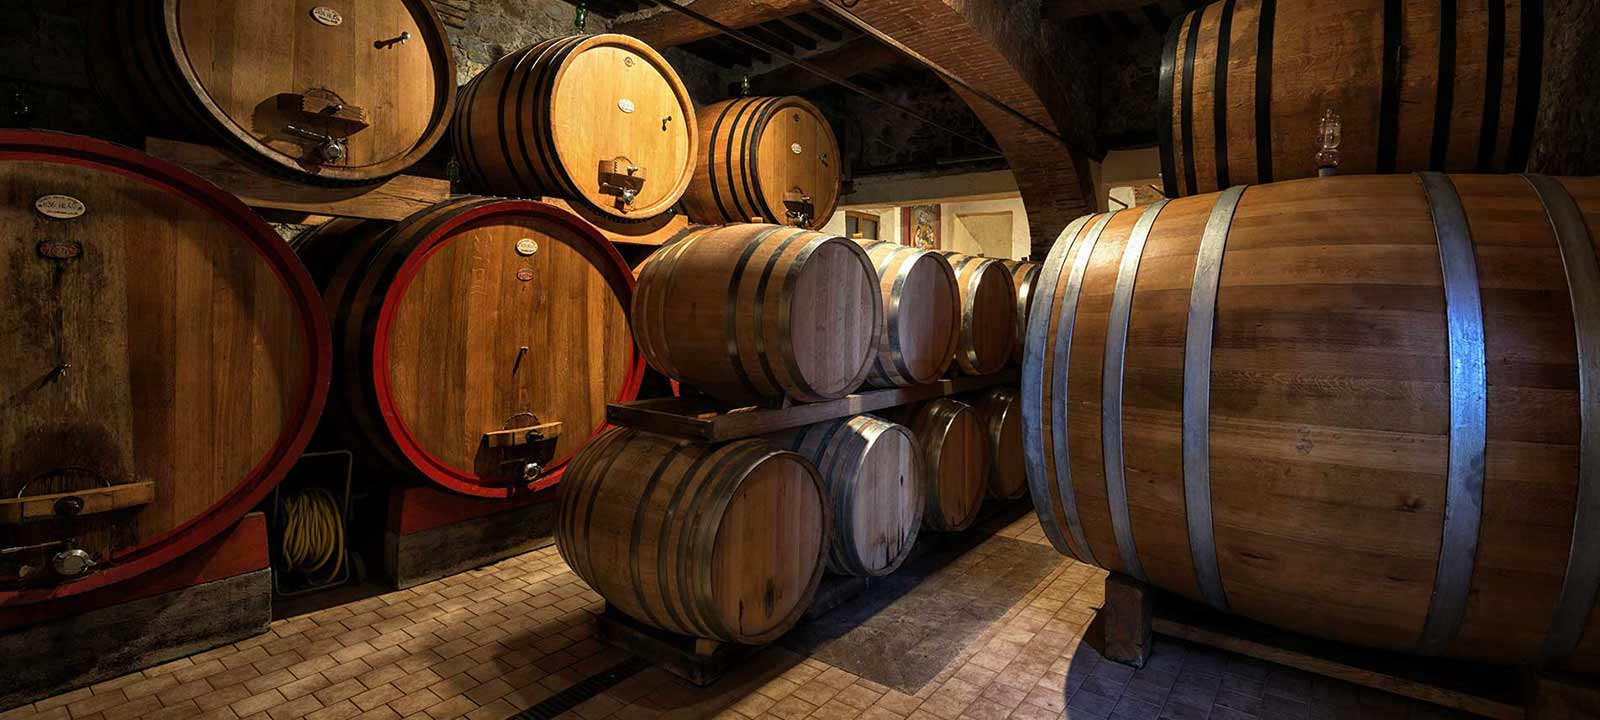 Our Wine Tours